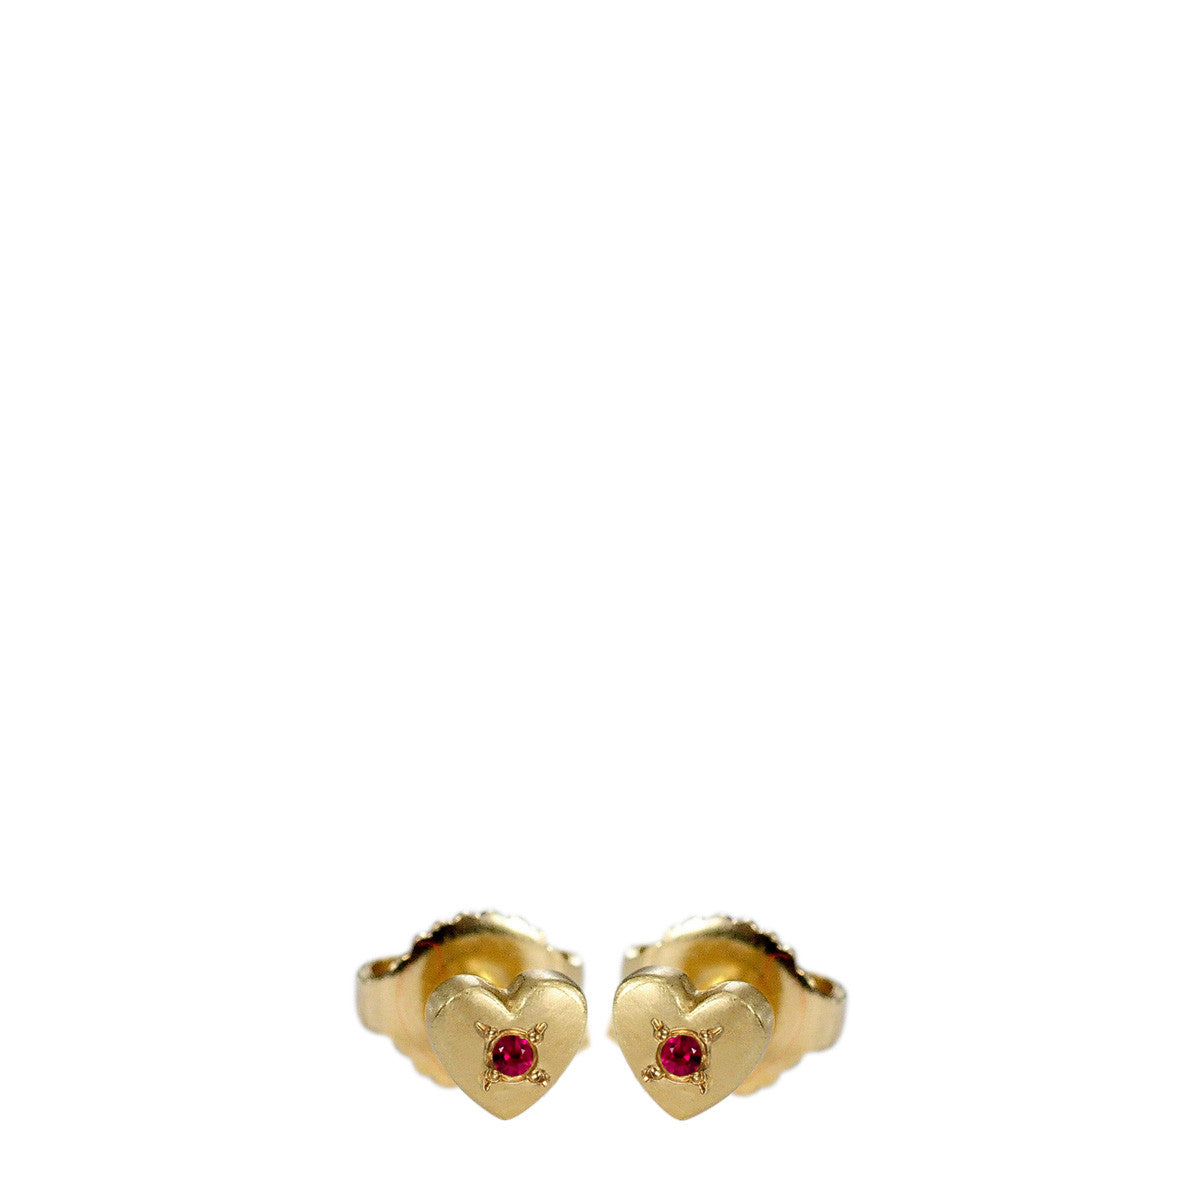 18K Gold Heart Stud Earrings with Rubies